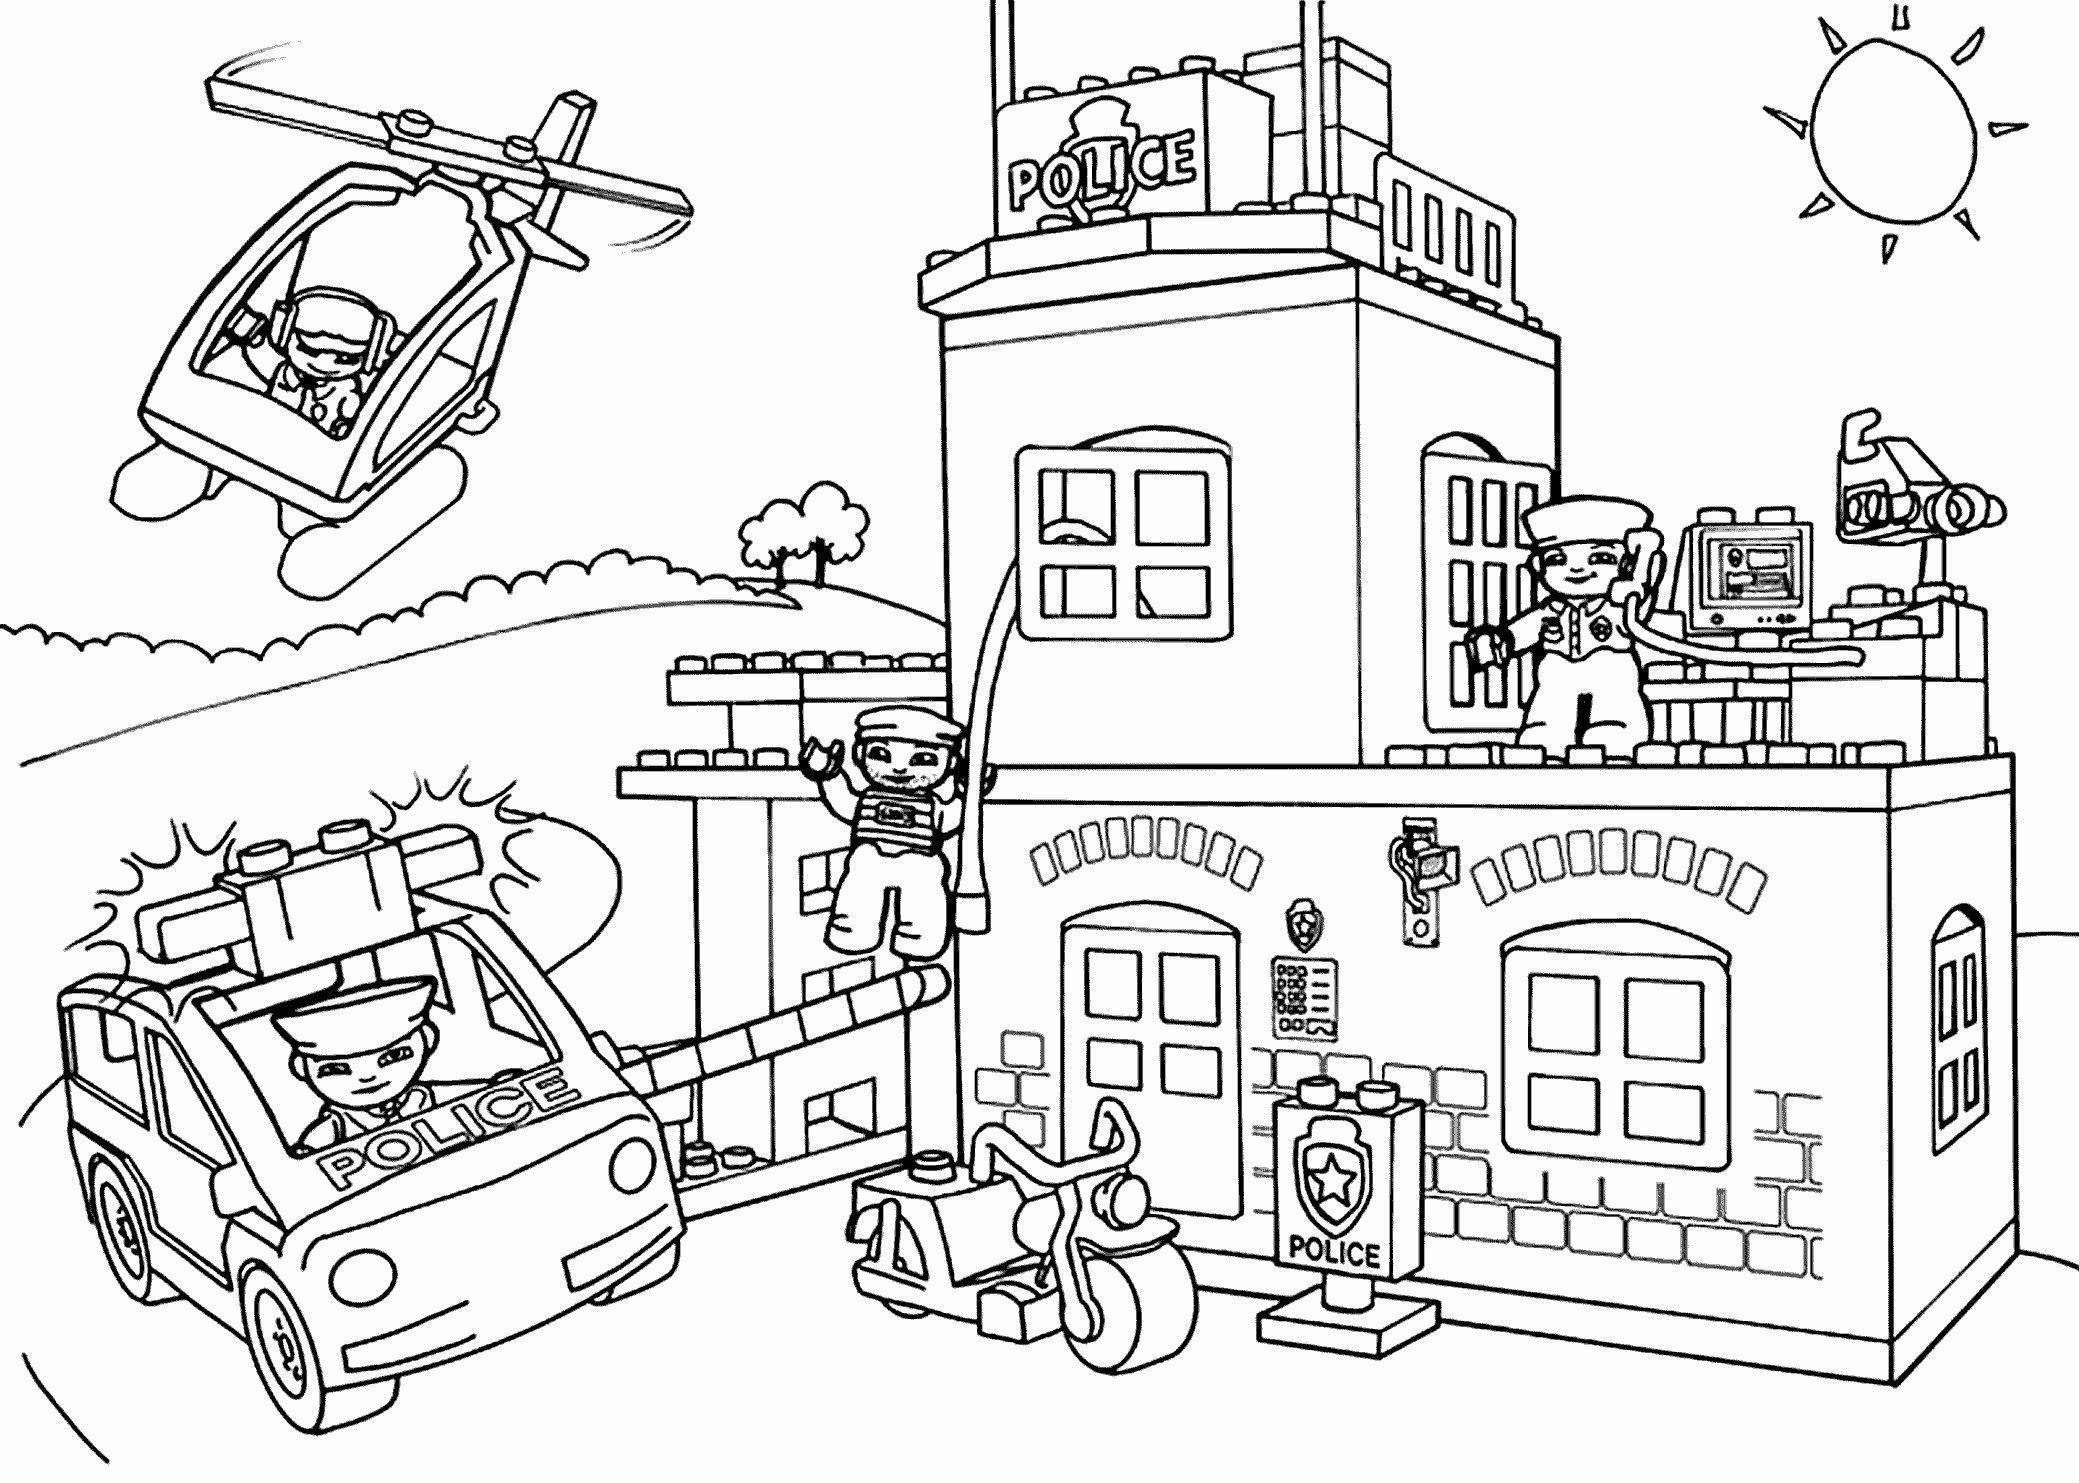 Lego City Coloring Pages New Lego City Coloring Pages Paginas Para Colorear Para Ninos Paginas Para Colorear Libro De Colores